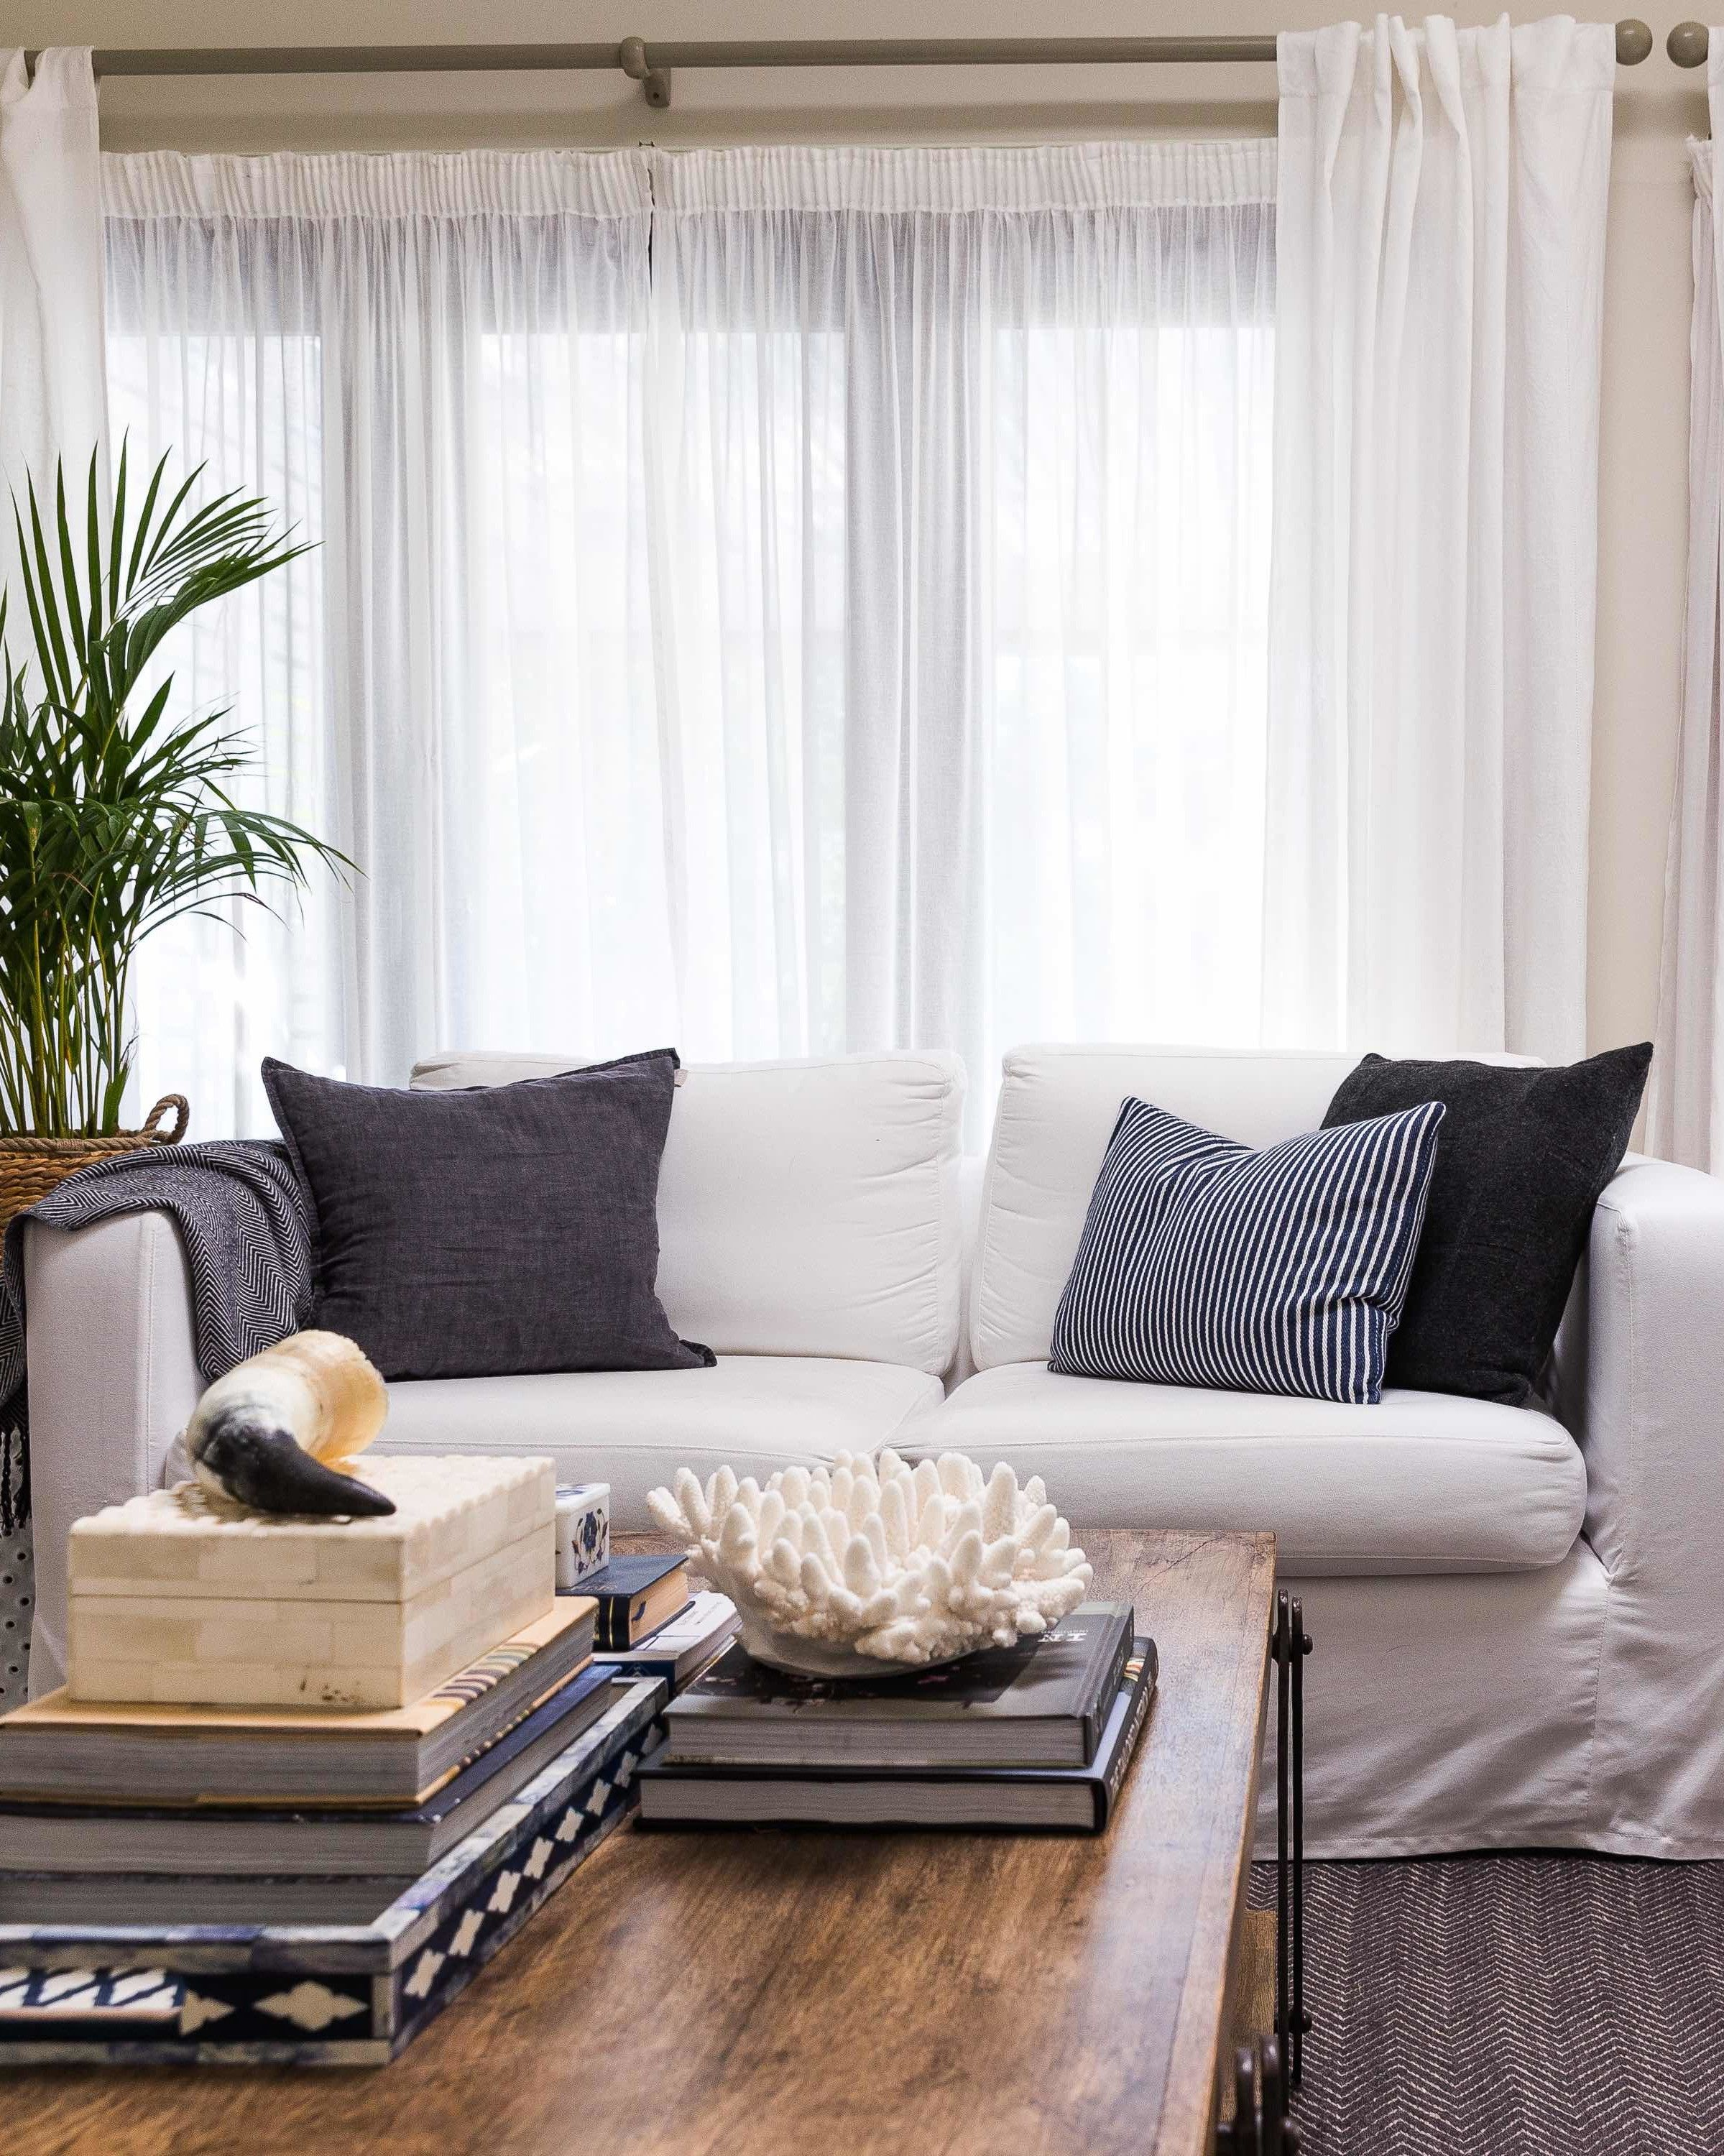 Decorating A Room Online: Everything You Need To Know To Create The Perfect Family